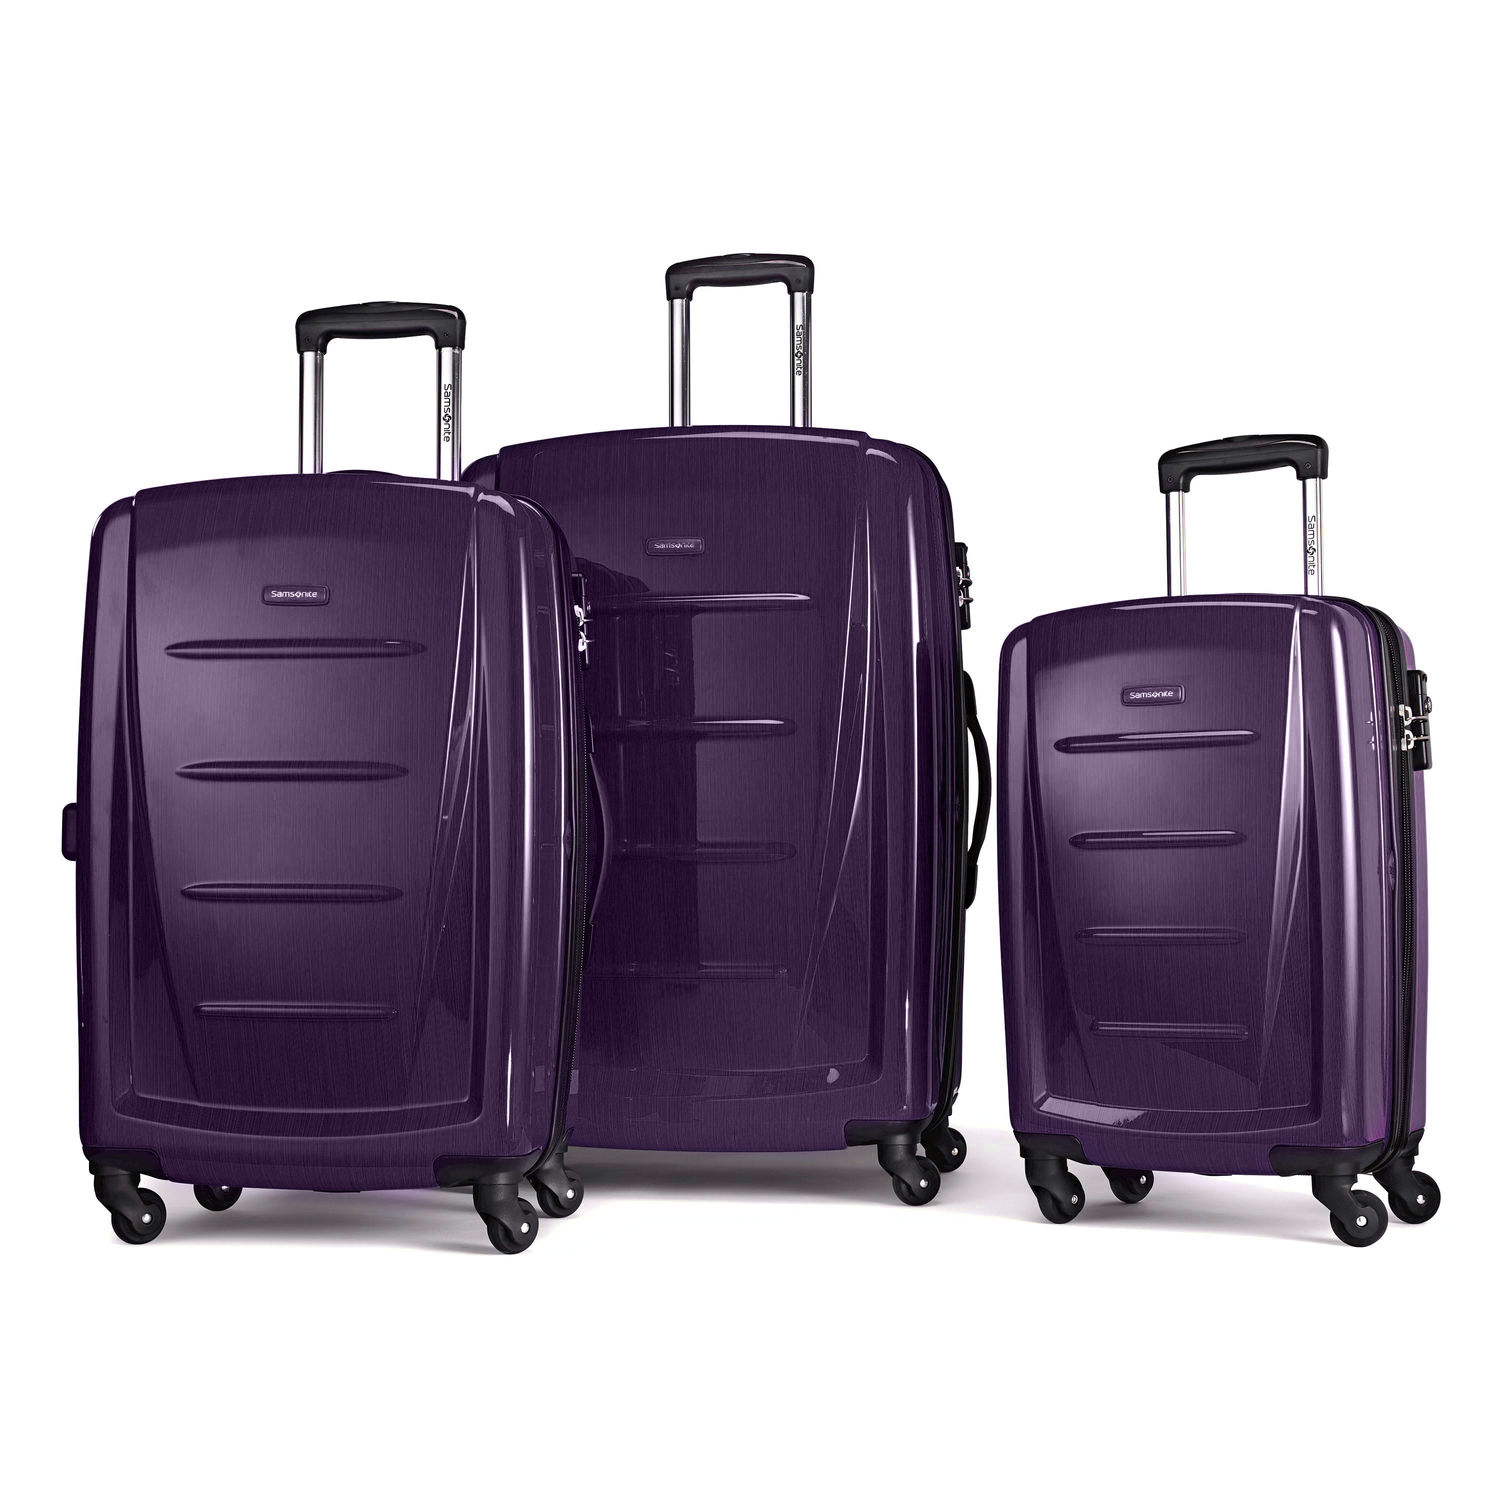 Samsonite Winfield 2 Fashion 3 Piece Spinner Set – Square, TSA Lock, Full-Zip Interior, 4 Colors